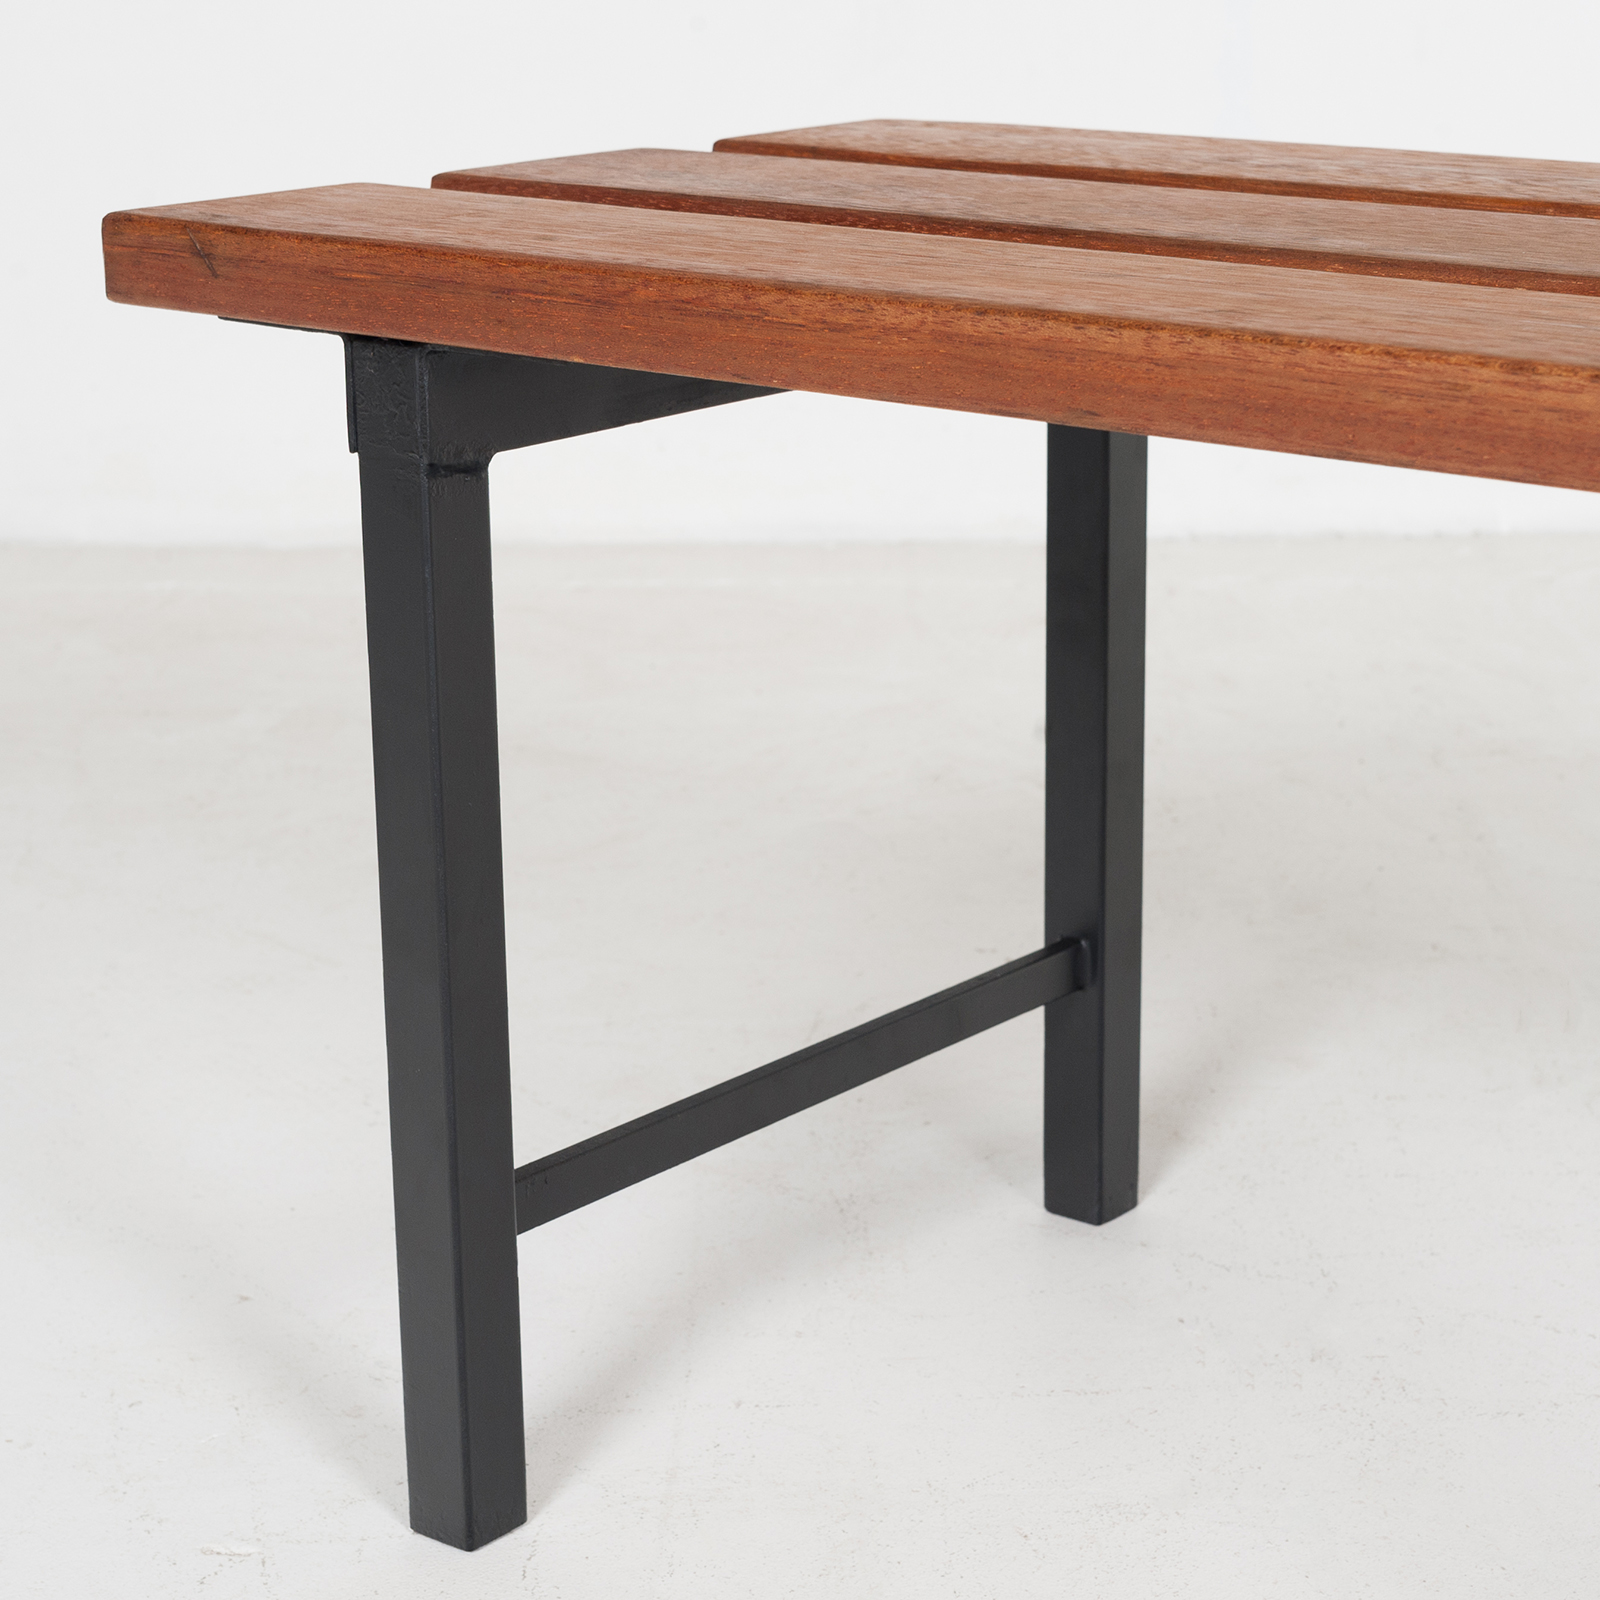 Two Seat Timber And Steel Bench, 1960s, The Netherlands53